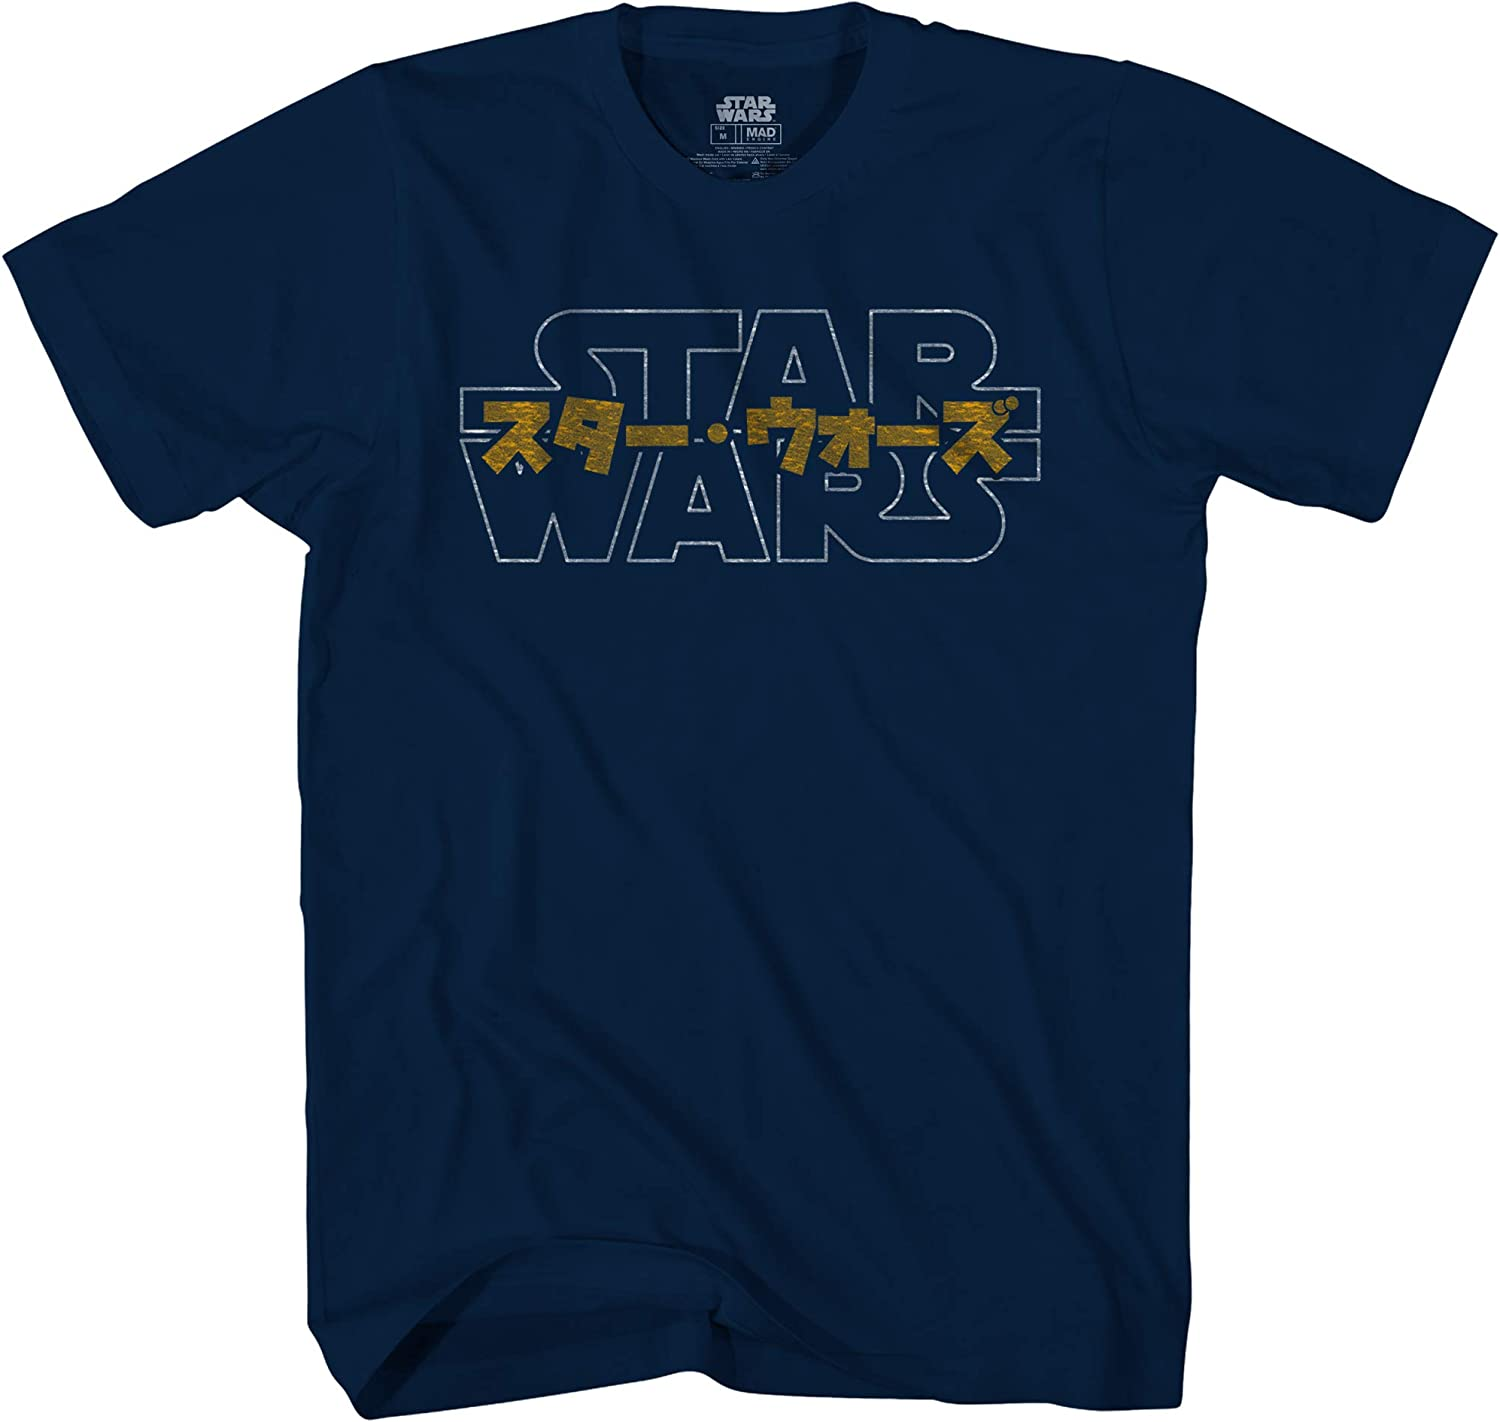 STAR WARS Logo Japanese Adult Tee Graphic T-Shirt for Men Tshirt